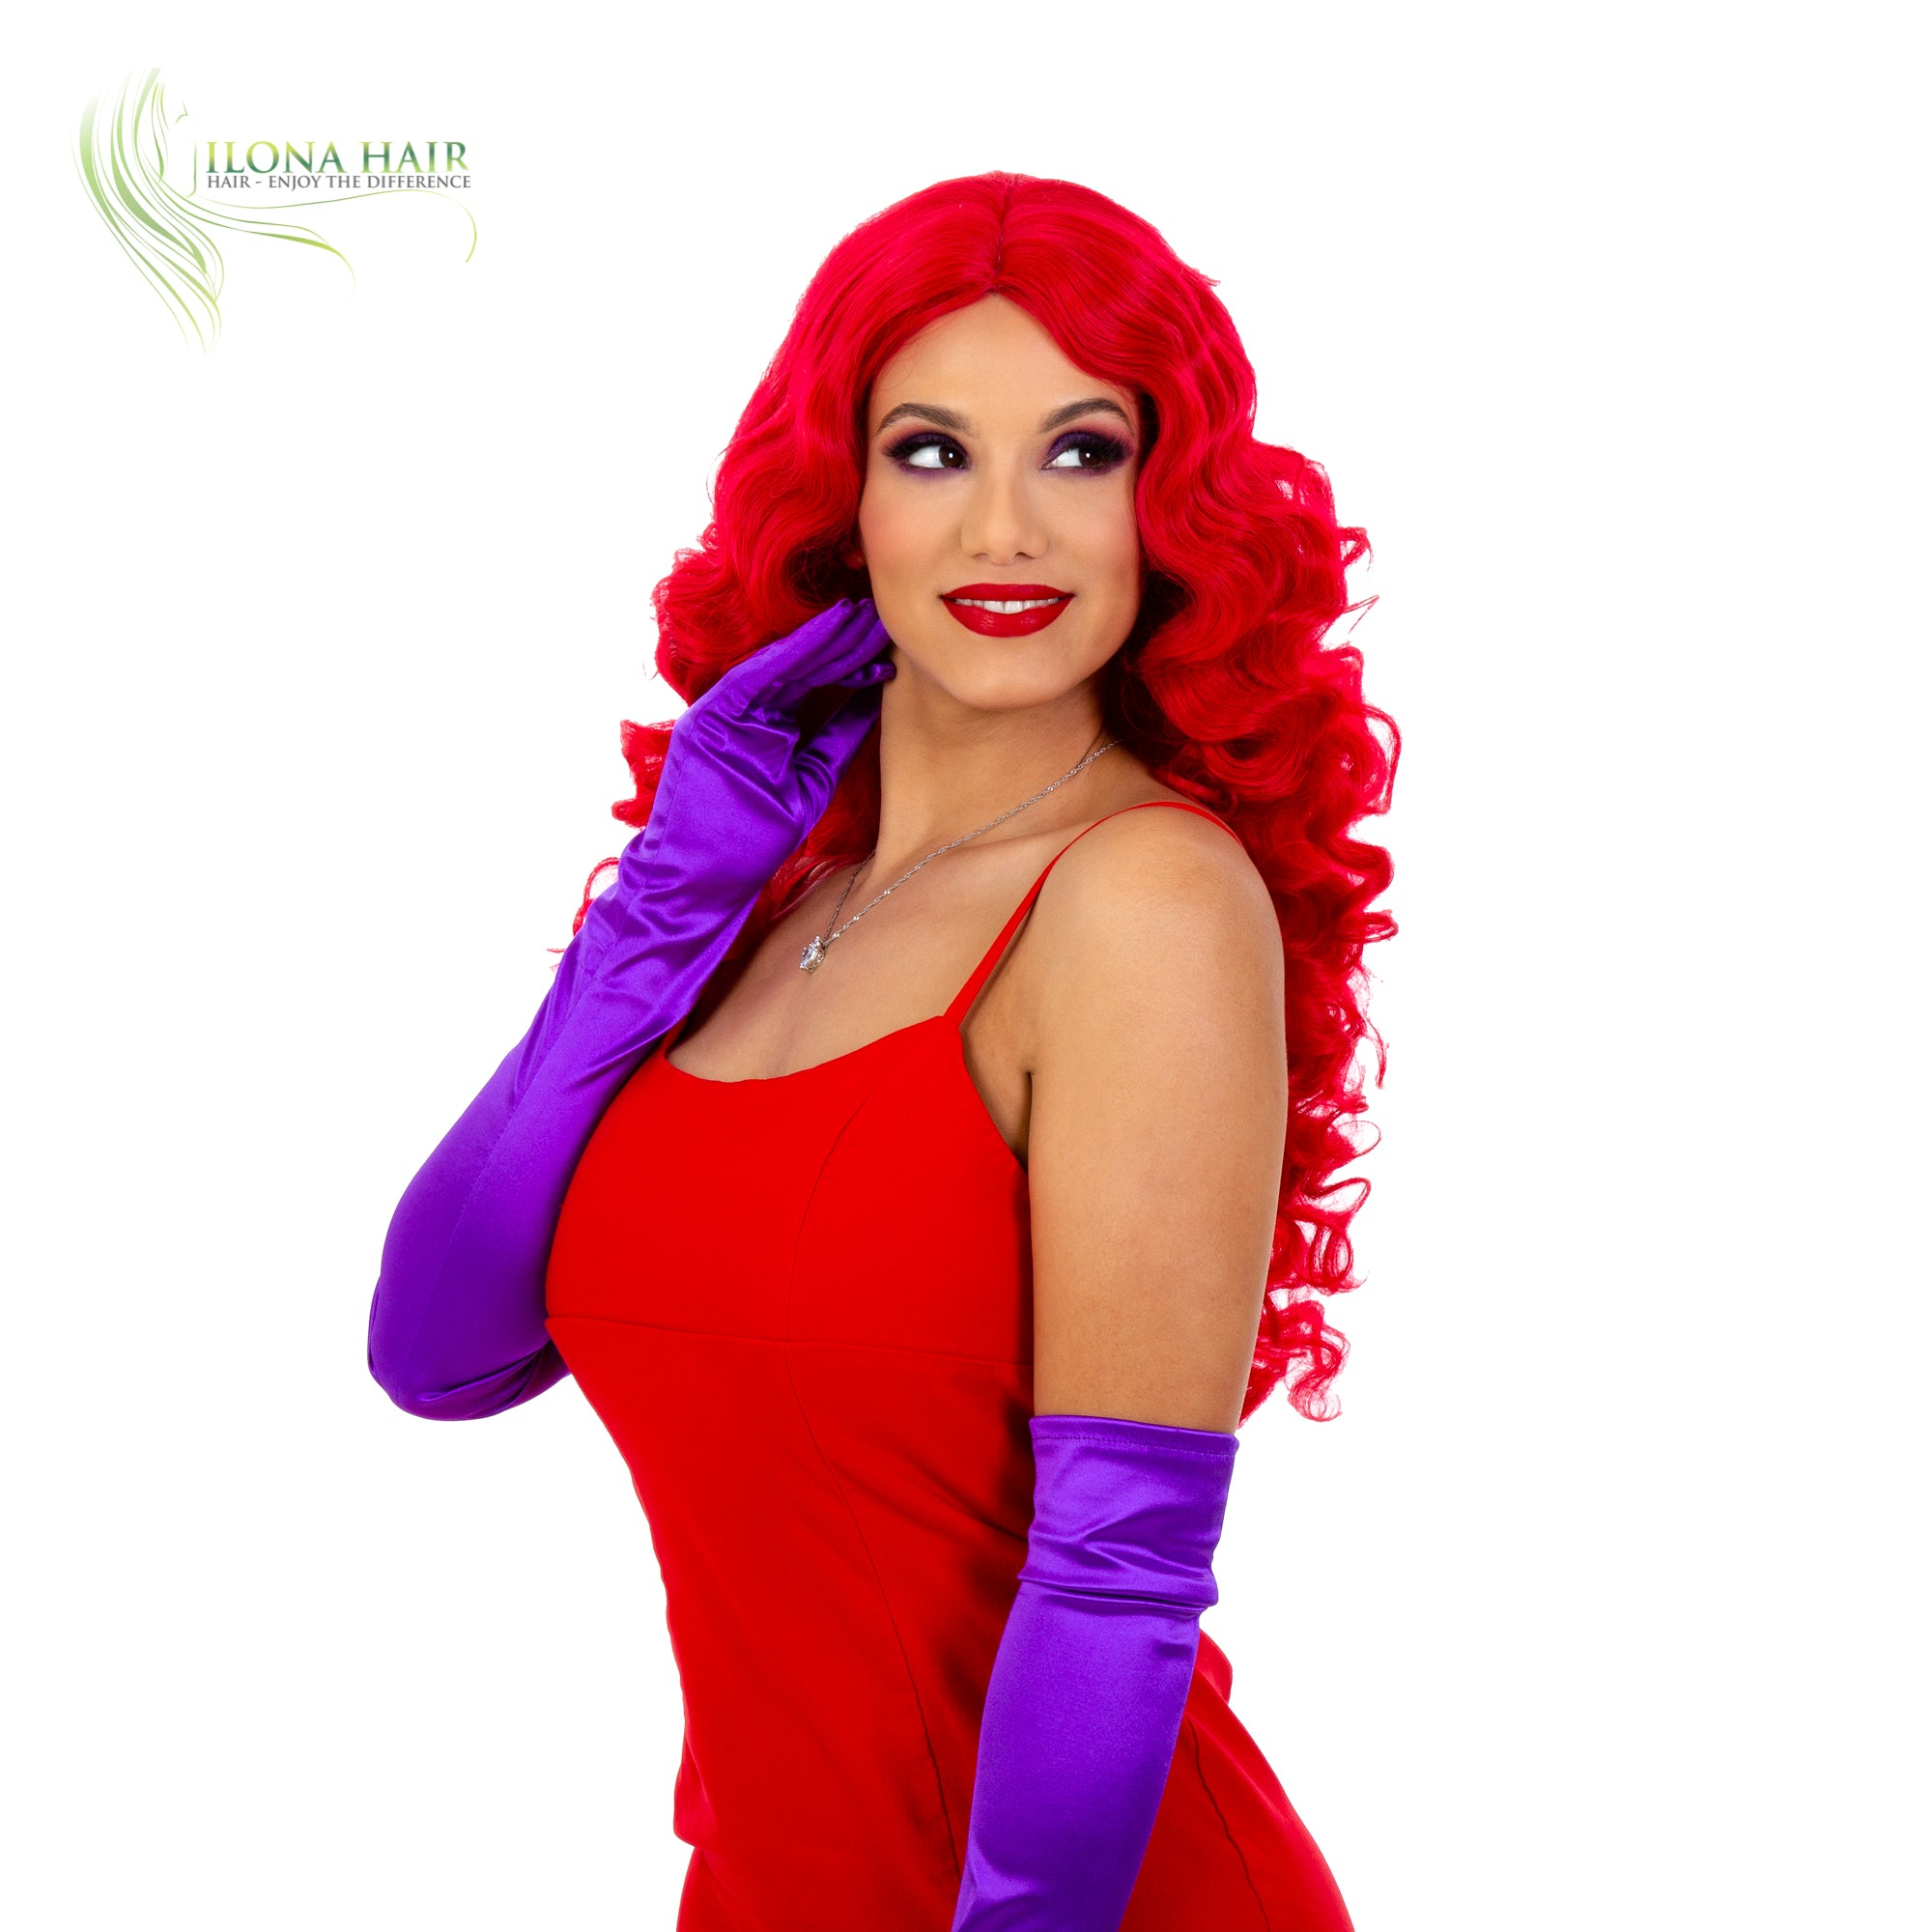 Jessica Rabbit Synthetic Hair Wig 1 Color Ilona Hair